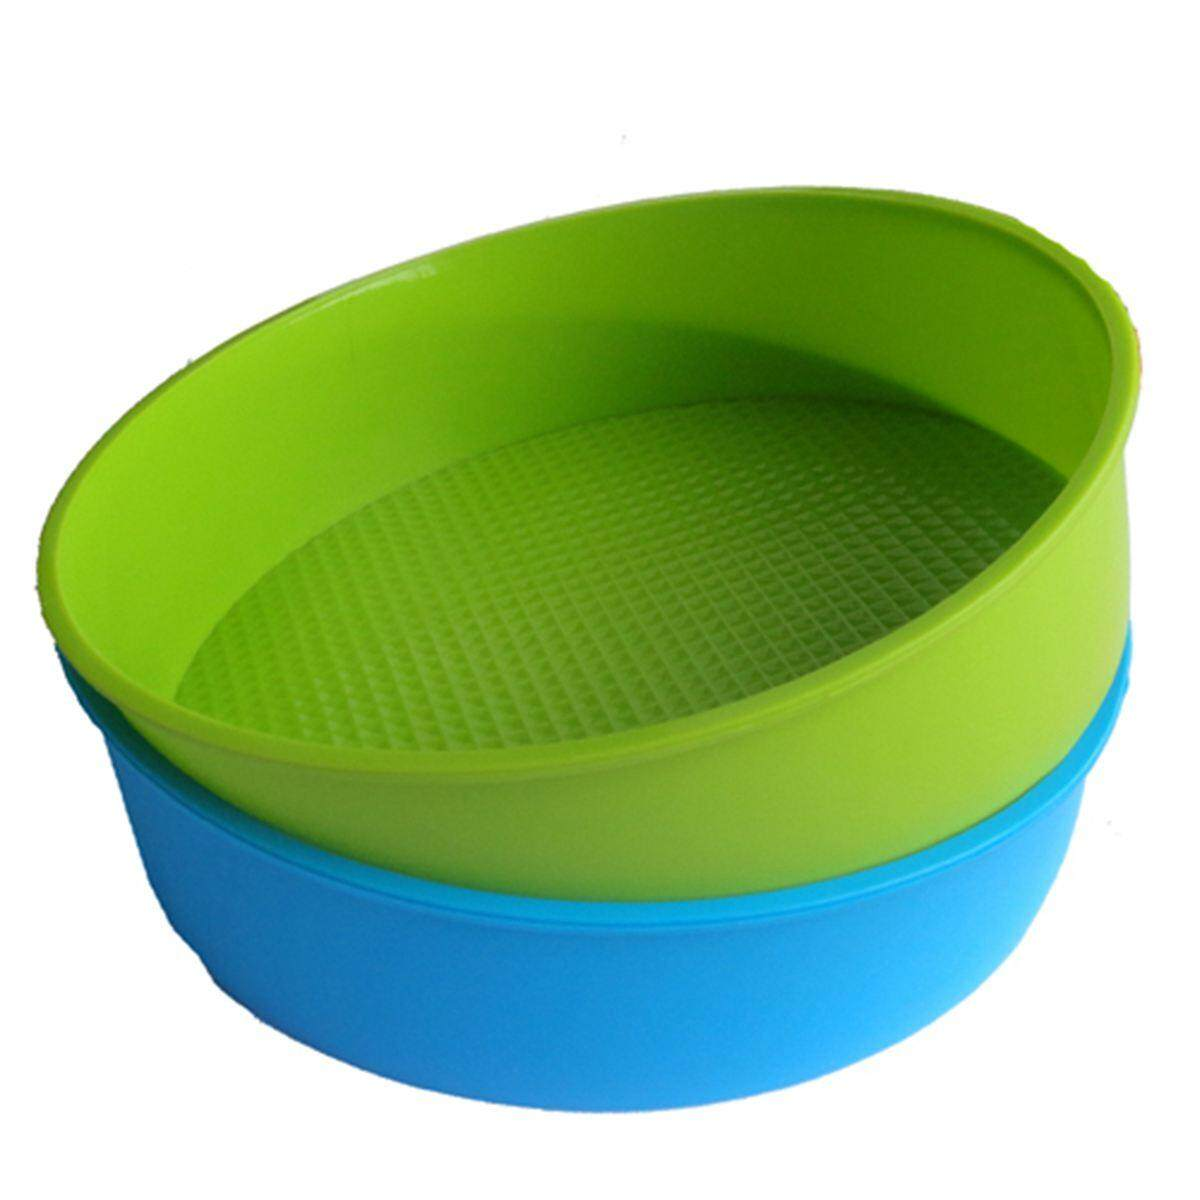 Silicone Mould Bakeware 26cm/10inch Round Cake Form Baking Pan Blue and green colors are